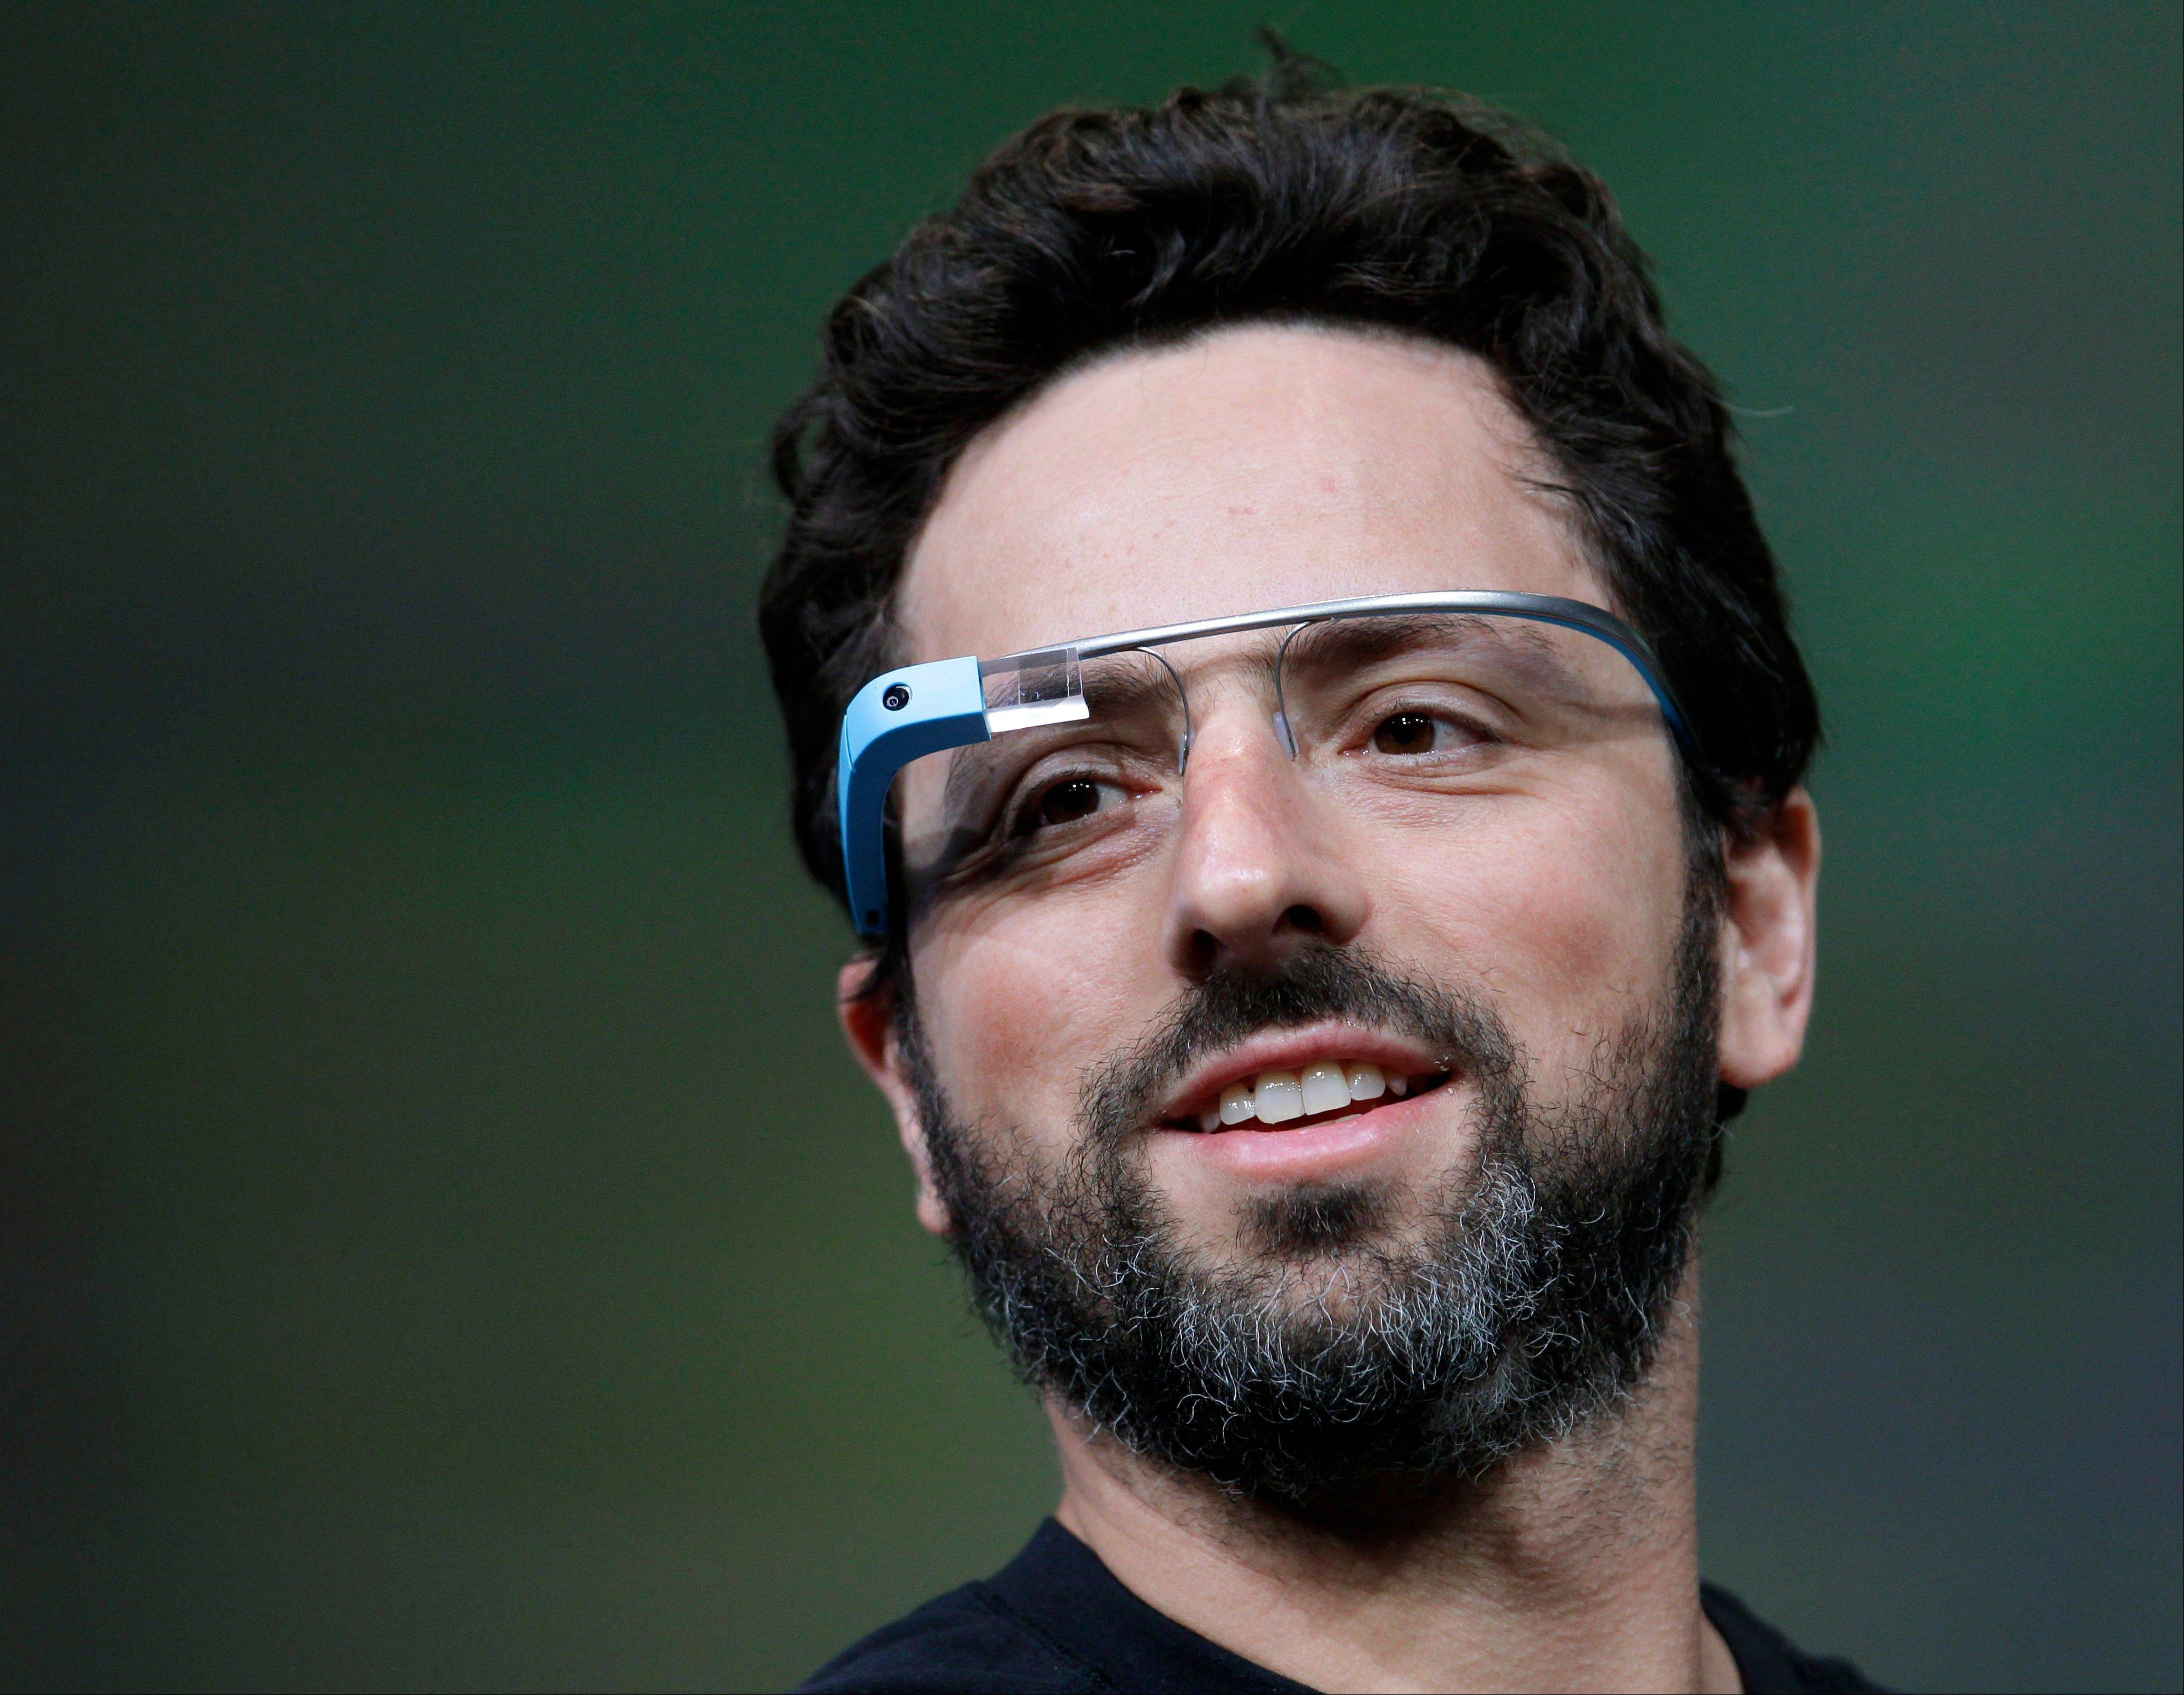 Google co-founder Sergey Brin demonstrating Google's new Glass, wearable internet glasses, at the Google I/O conference in San Francisco.